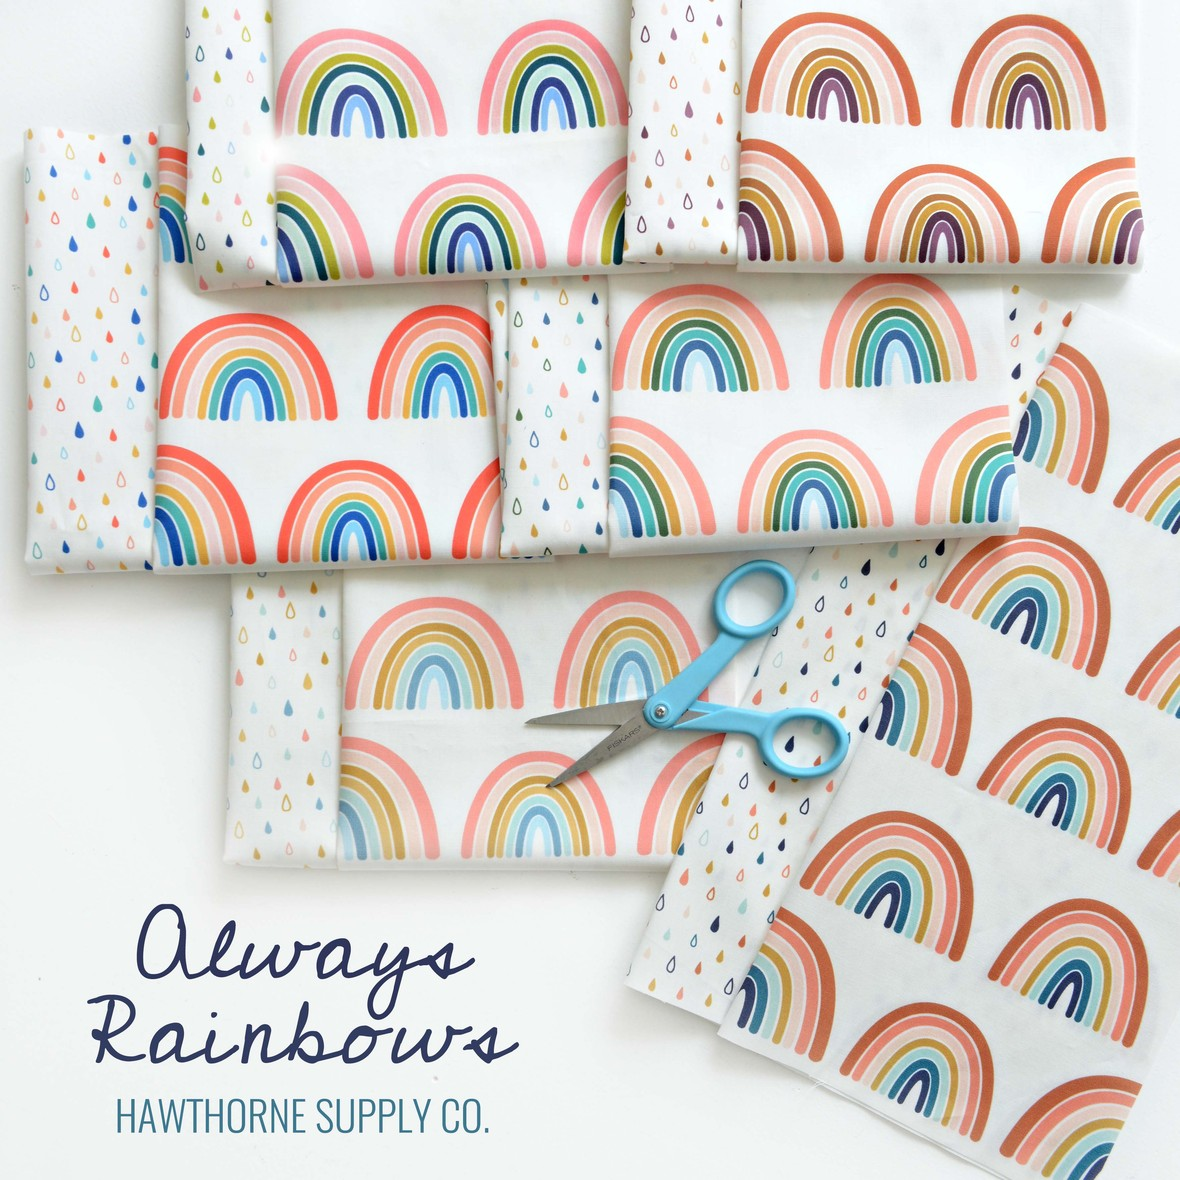 Always Rainbows fabric Hawthorne Supply Co.